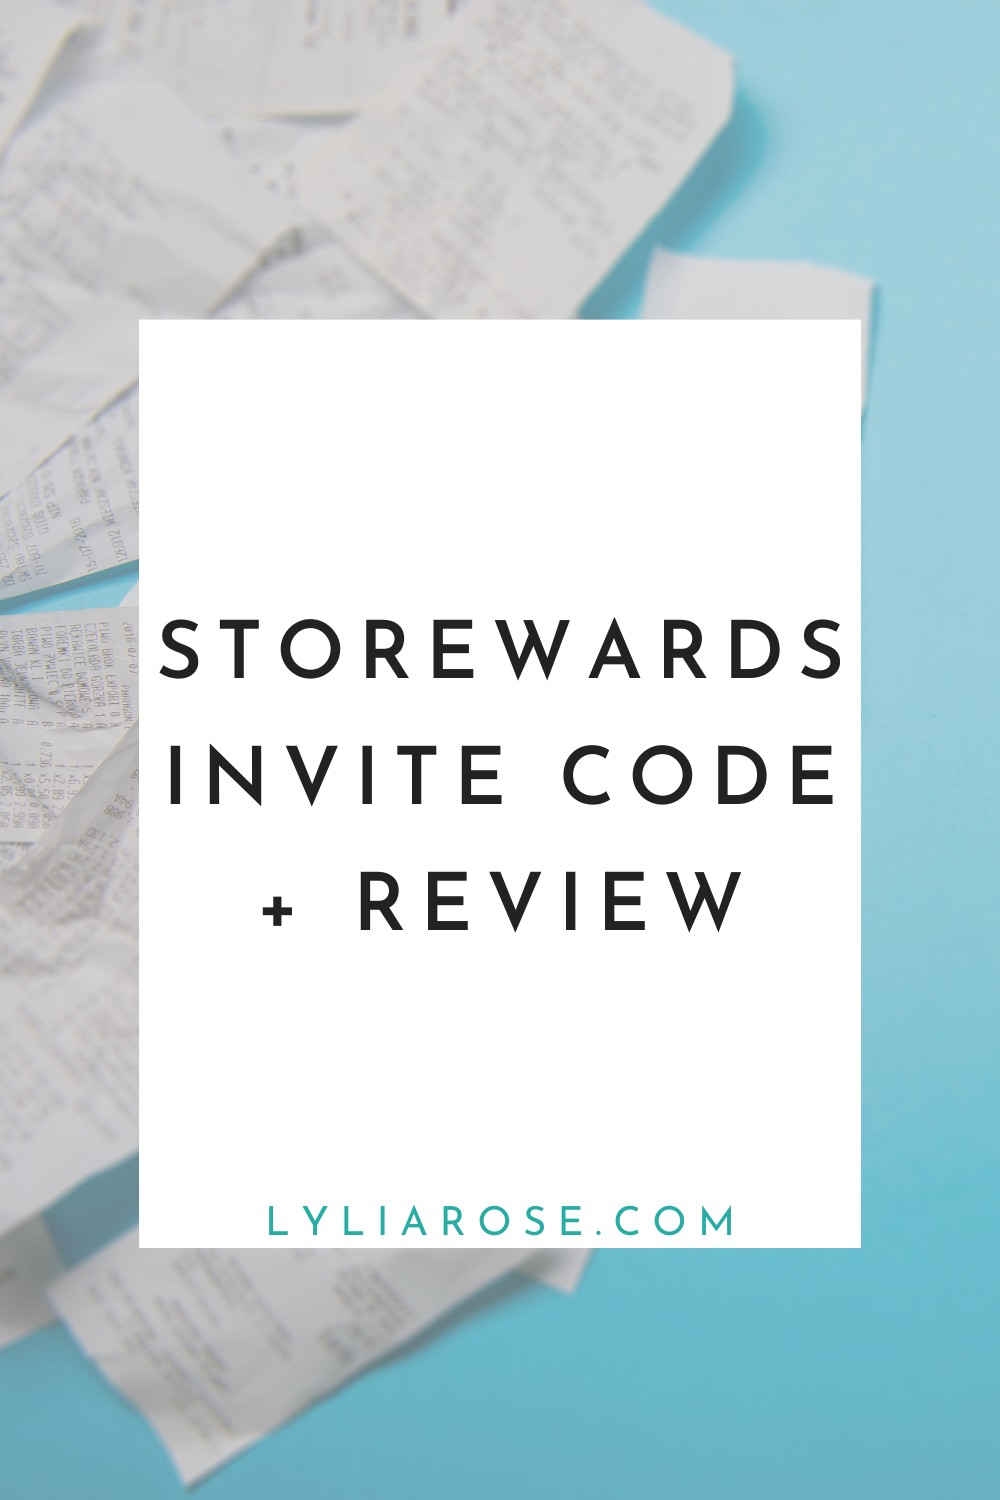 Storewards invite code